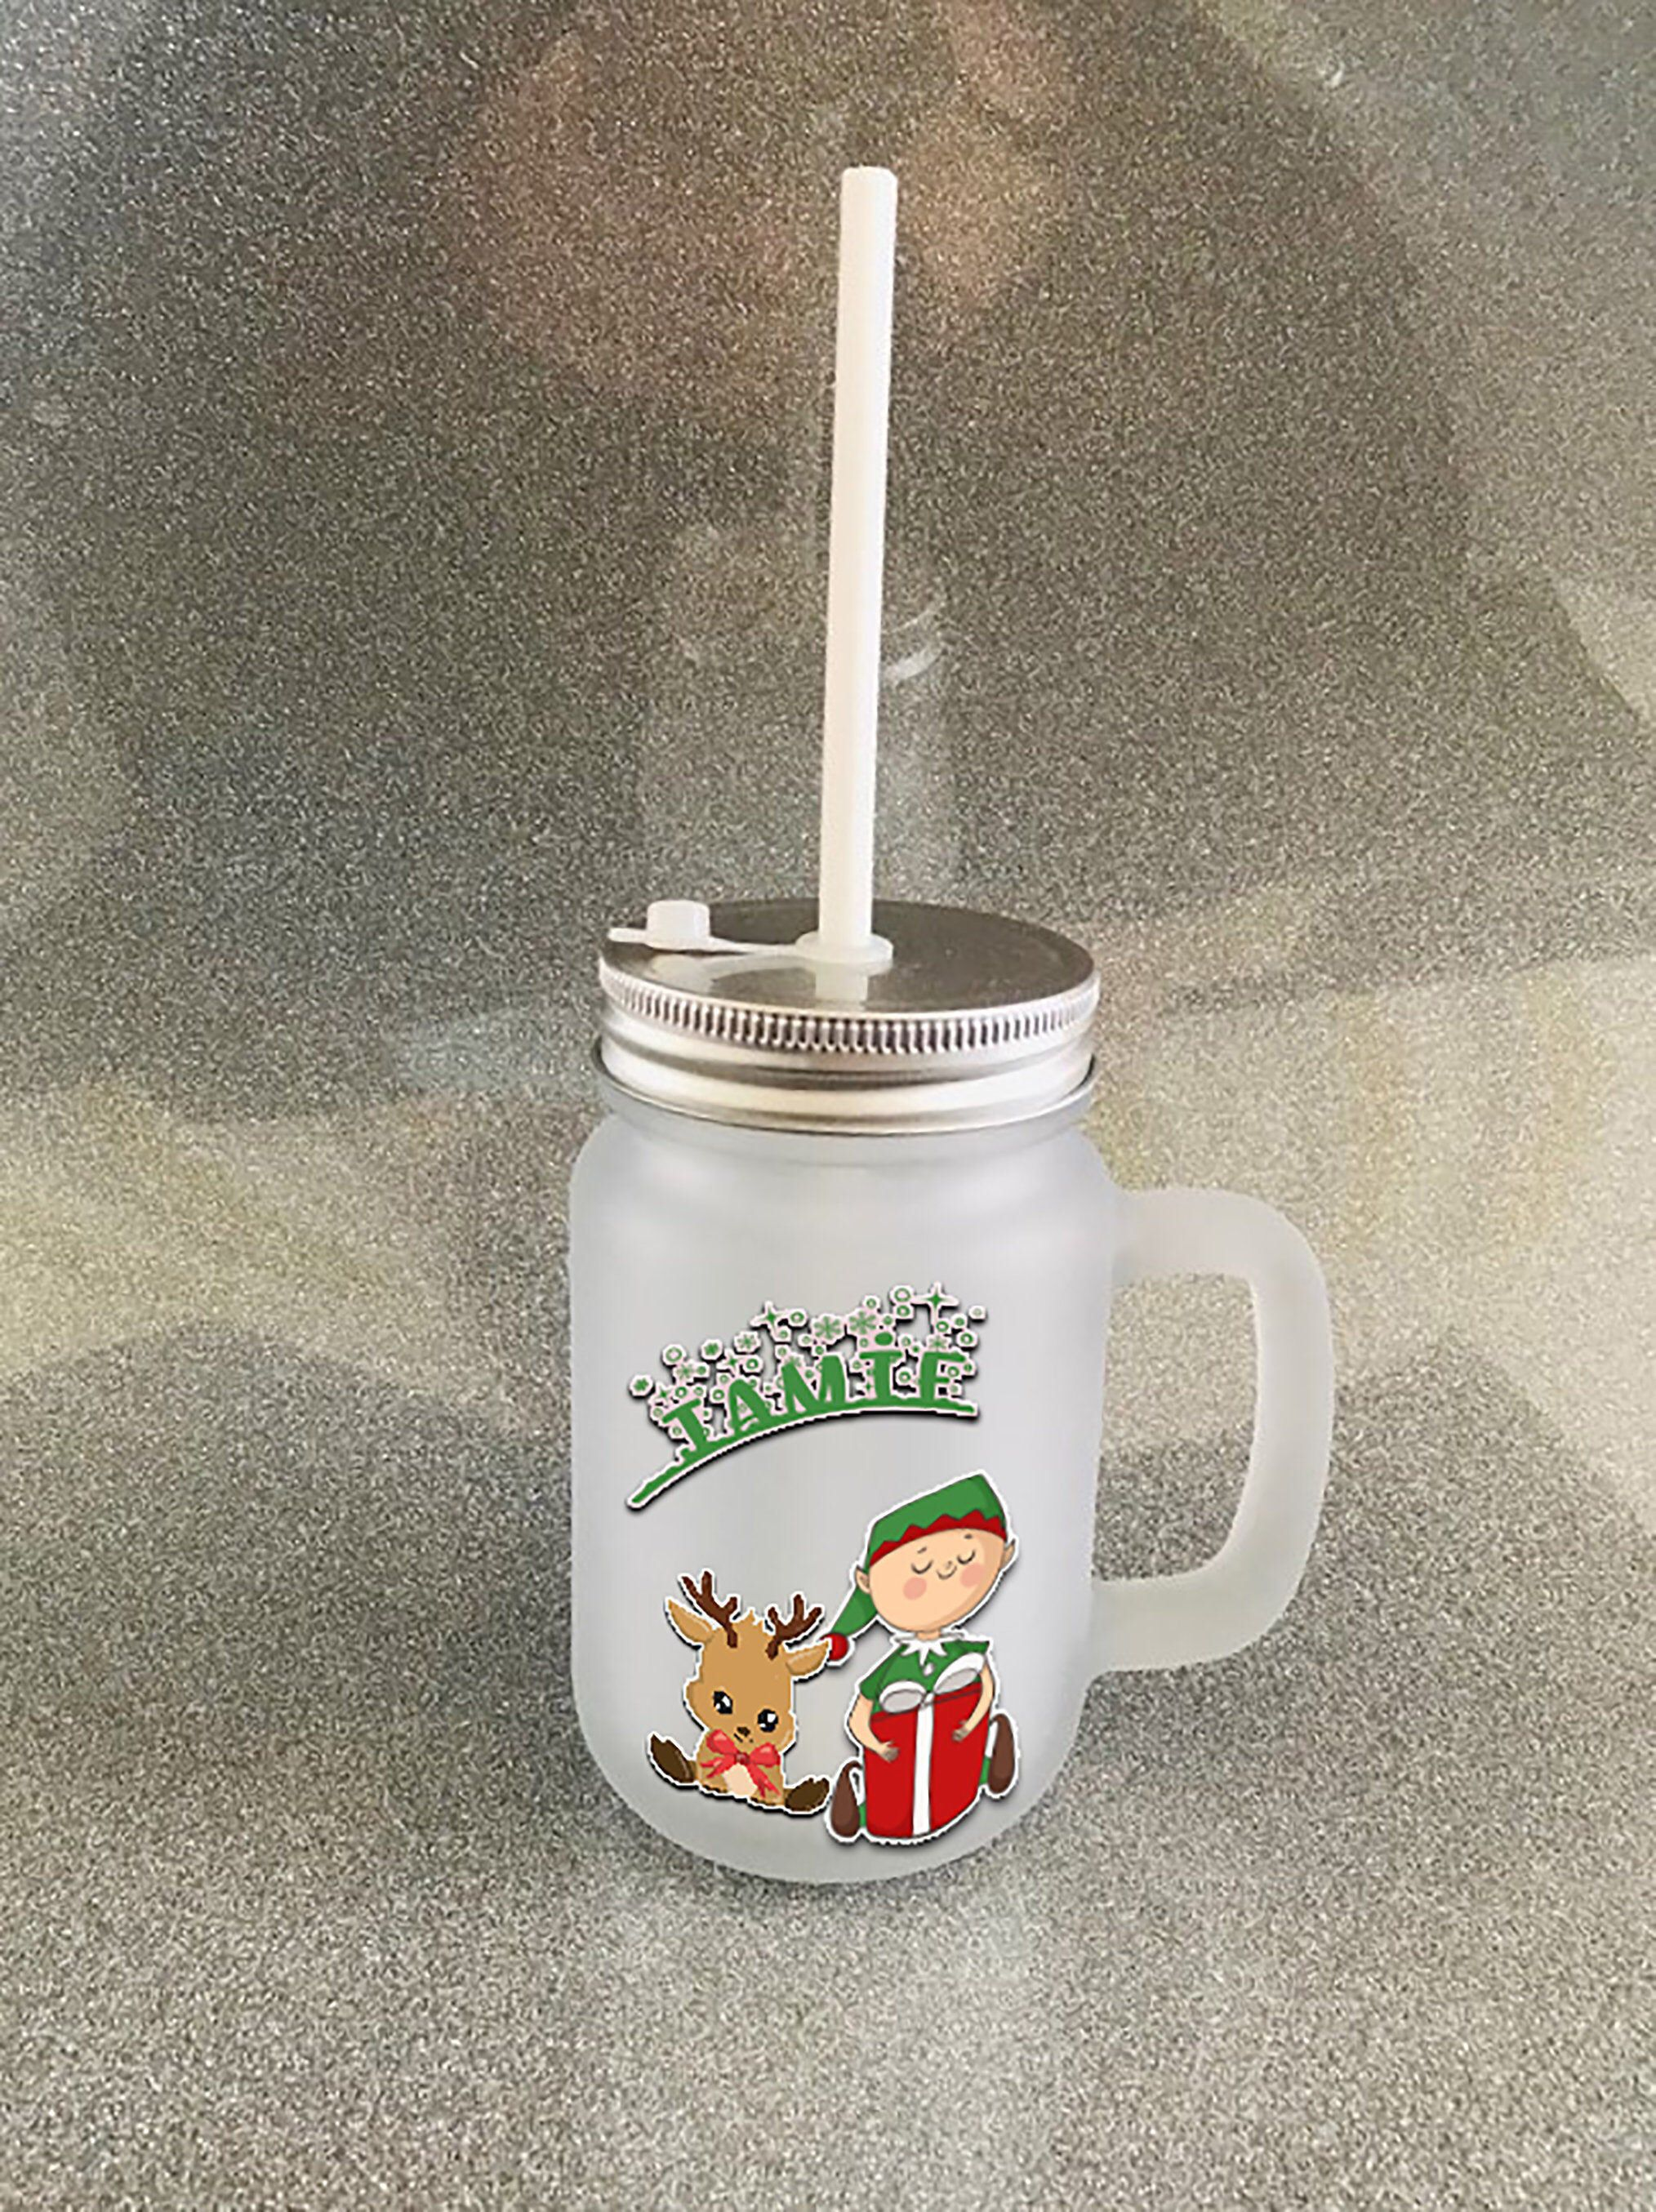 Excited To Share This Item From My Etsy Shop Childrens Personalised Masonjar With Straw And Screw Lid Ad Personalized Mason Jars Mason Jars Etsy Christmas